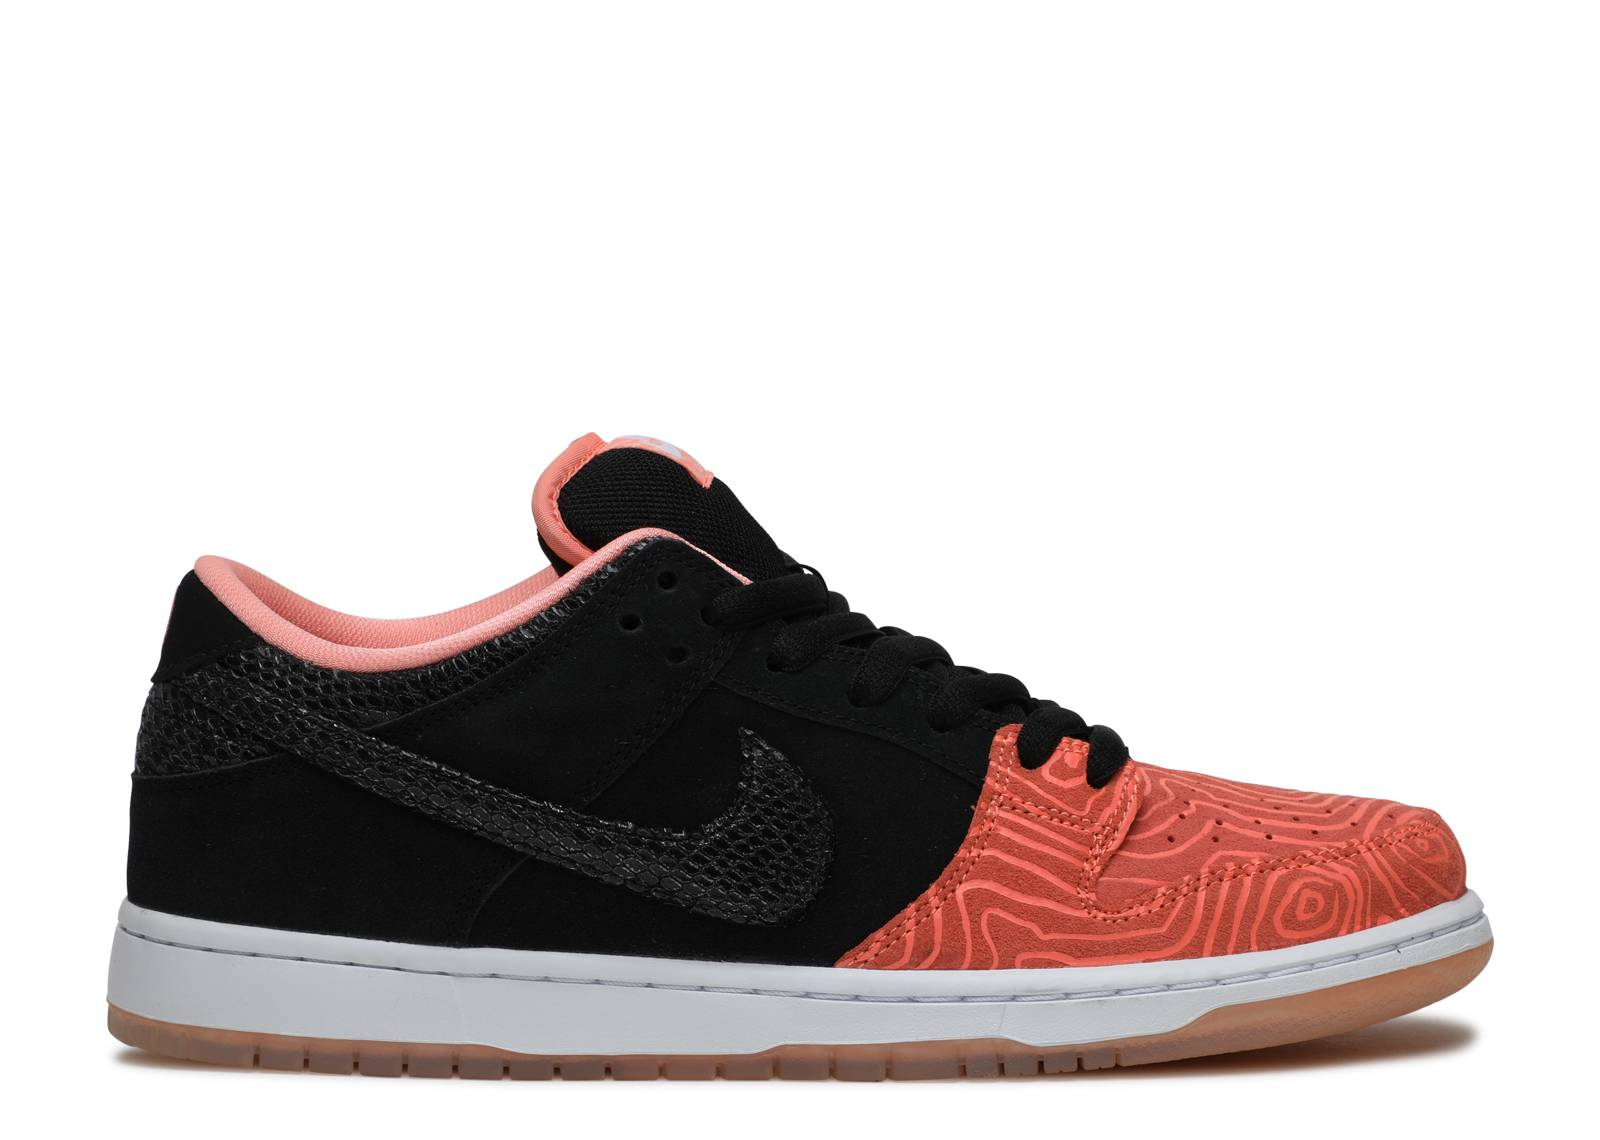 the best attitude 1153f 7bc71 Premier x Dunk Low Pro SB 'Fish Ladder'